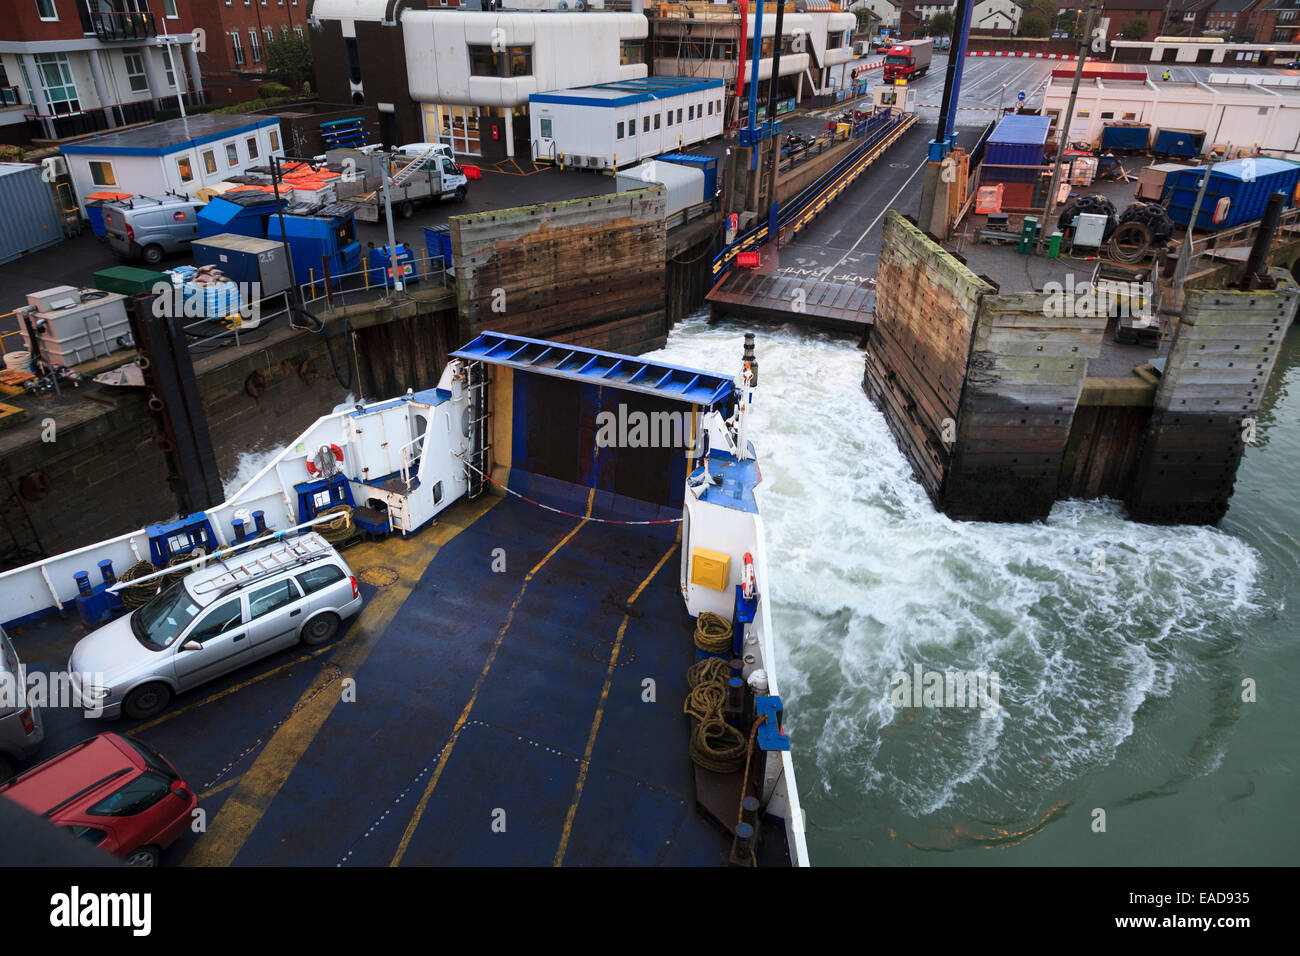 The Isle of Wight car ferry leaving dock at Portsmouth Harbour Stock Photo